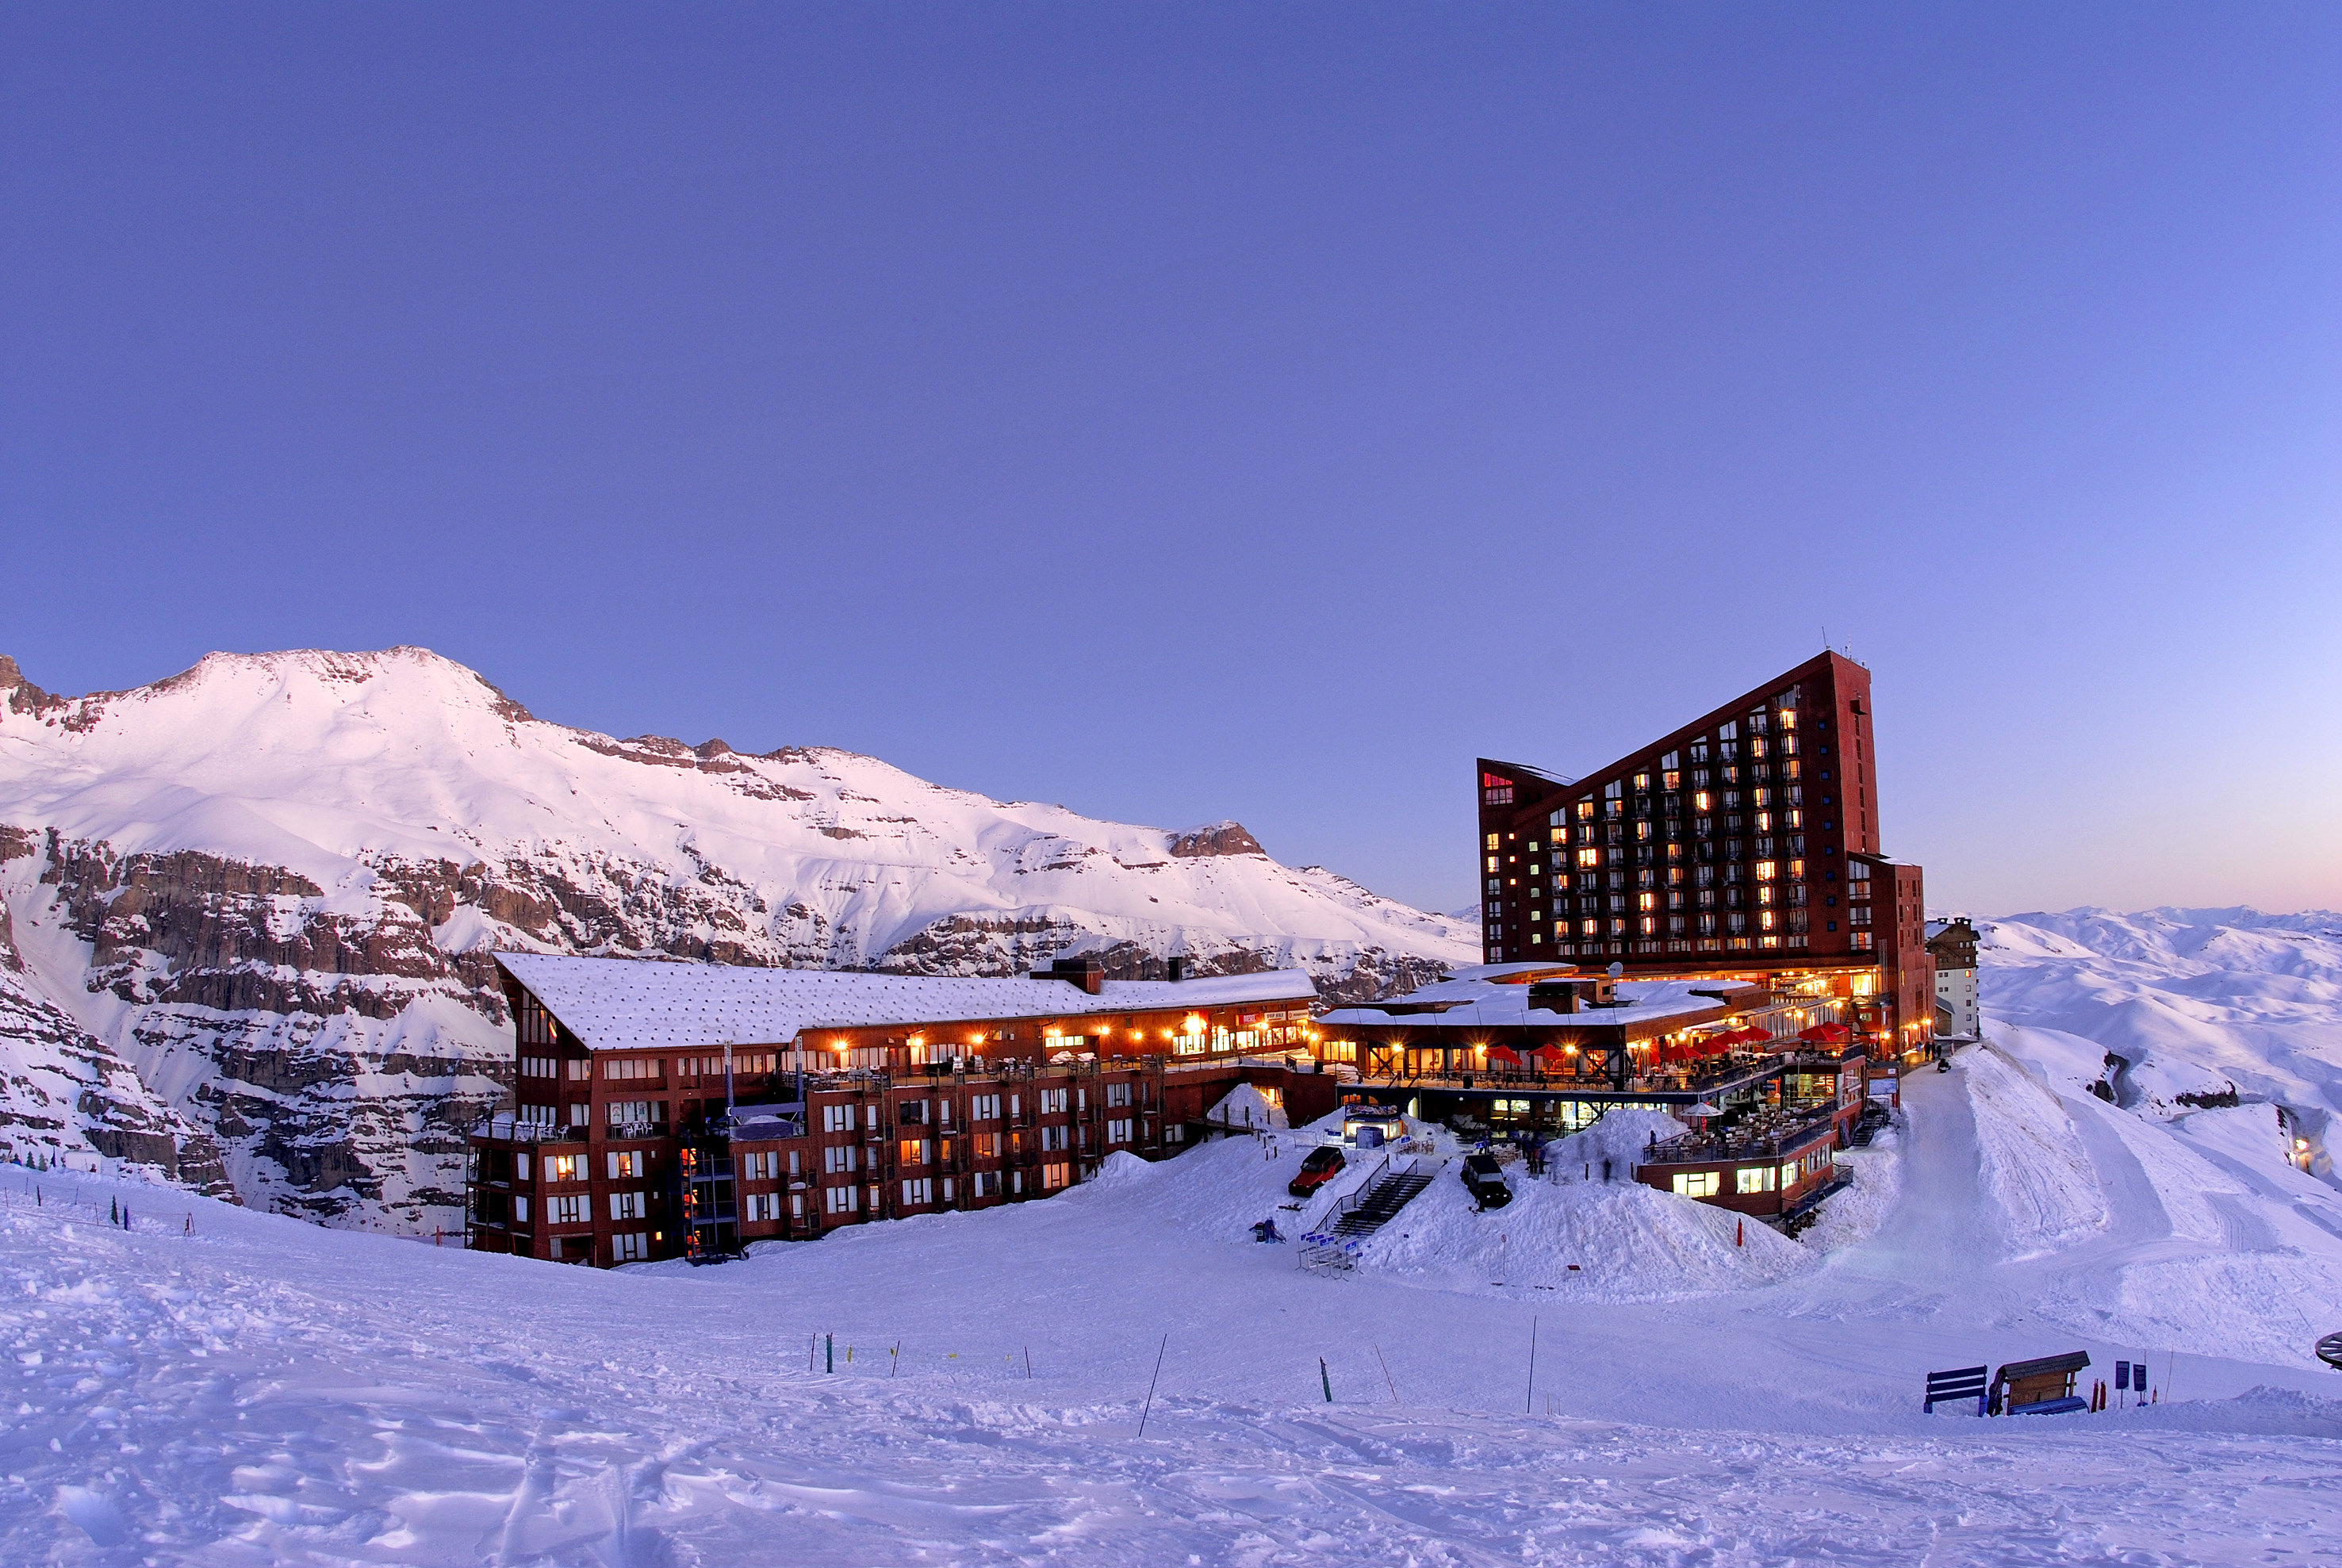 Valle nevado resort